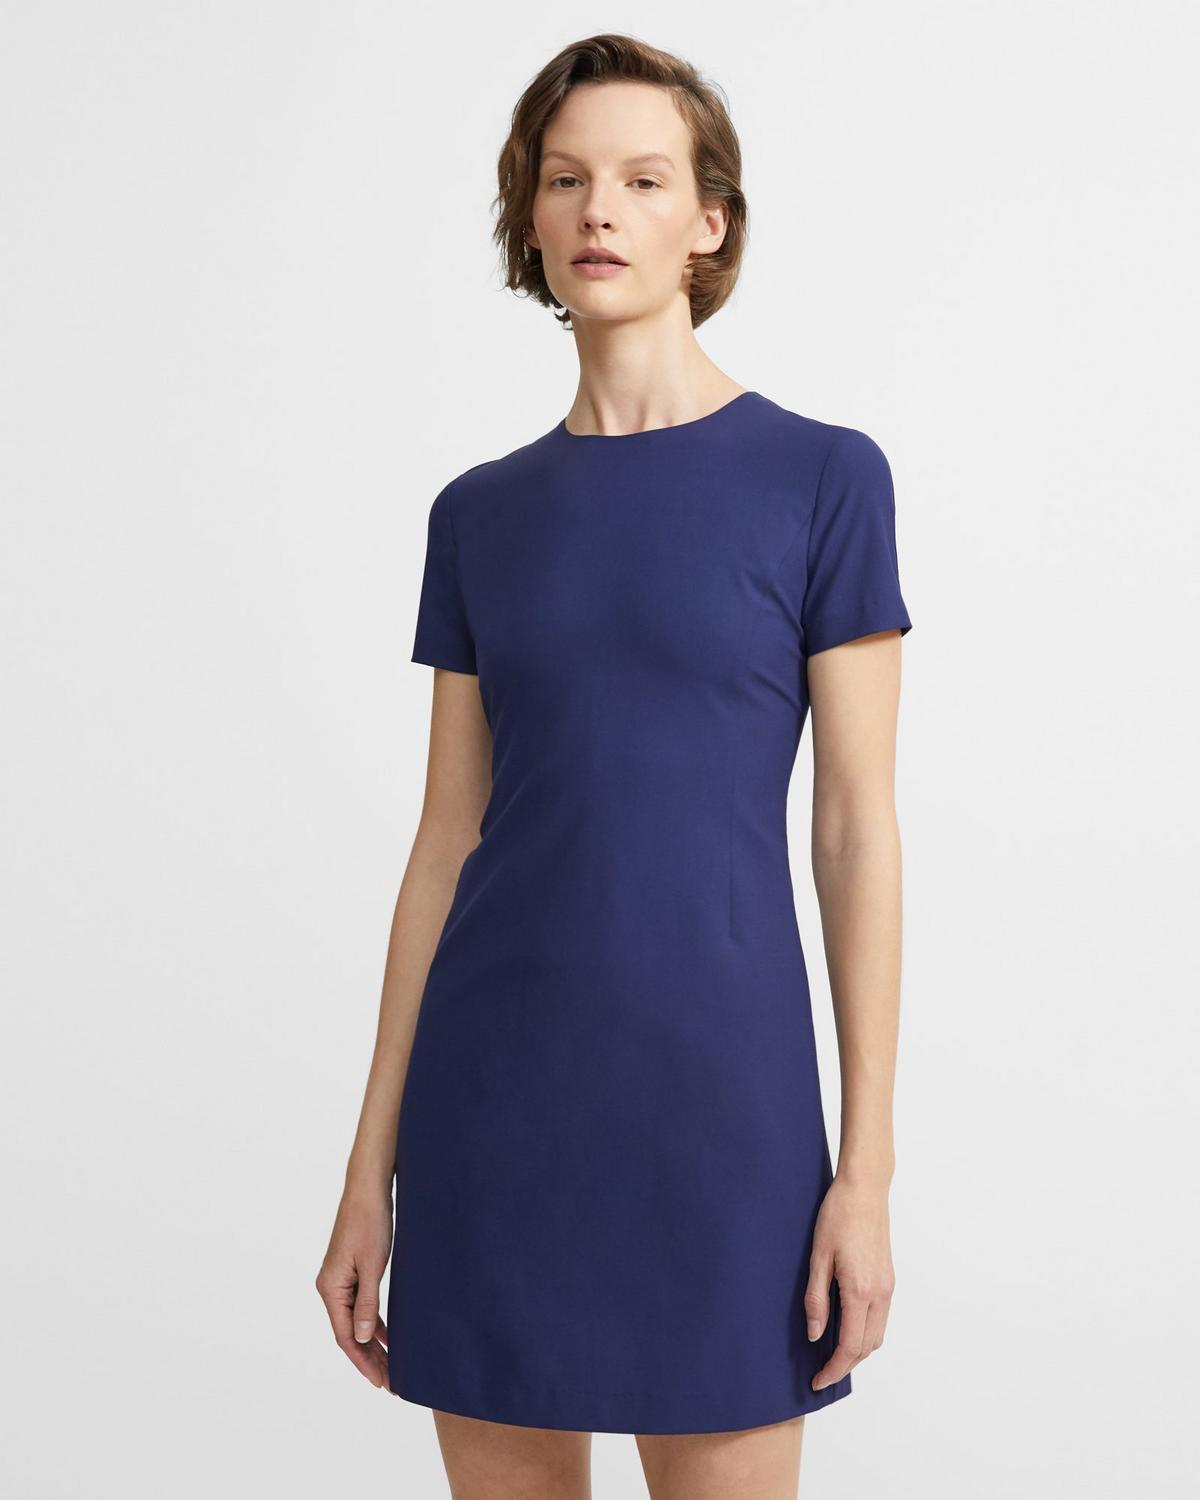 Jatinn Dress in Good Wool